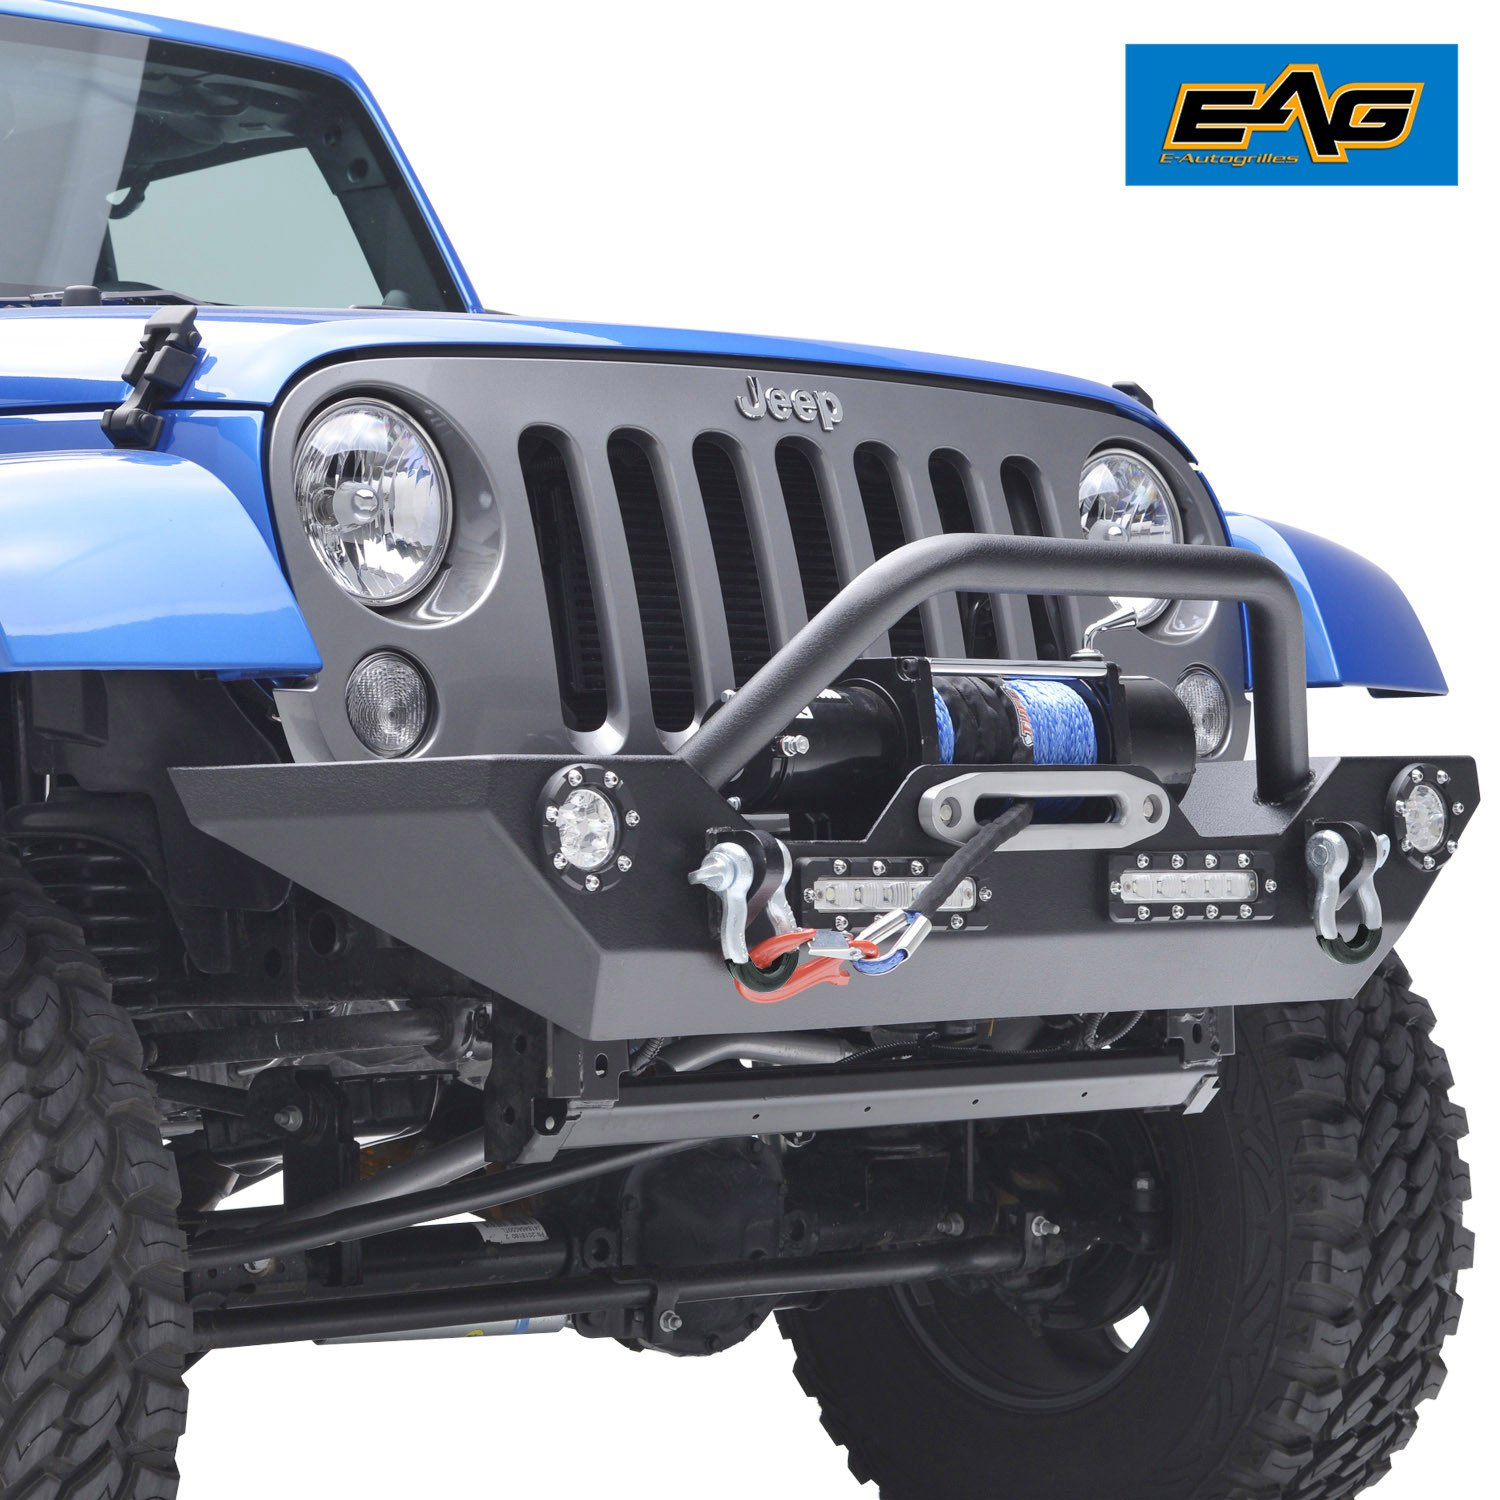 Eag Jeep Jk Led Accent Light Front Bumper W D Ring Winch Wiring Schamitic Wrangler Built In Mount Plate Automotive